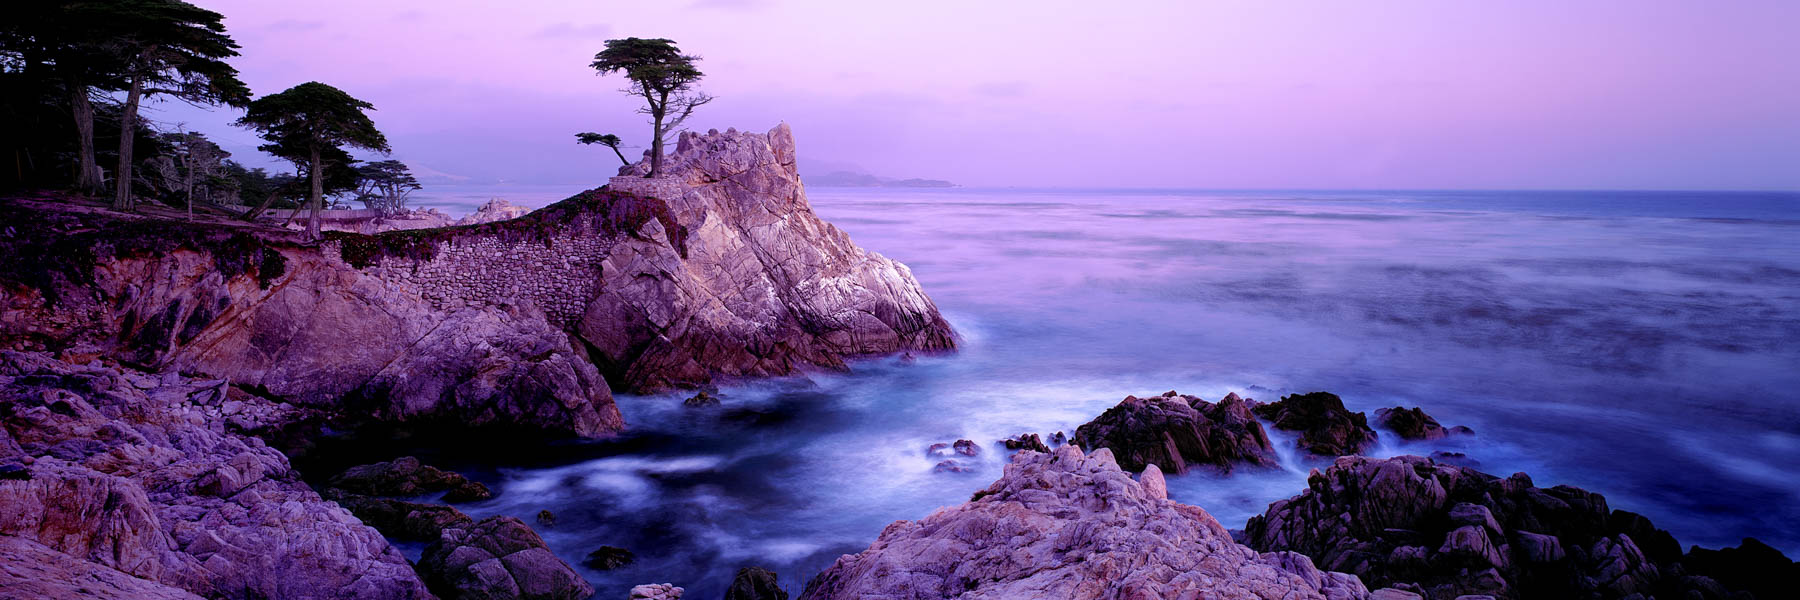 A dreamy pastel sunrise over The Lone Cypress, Carmel, California, USA.